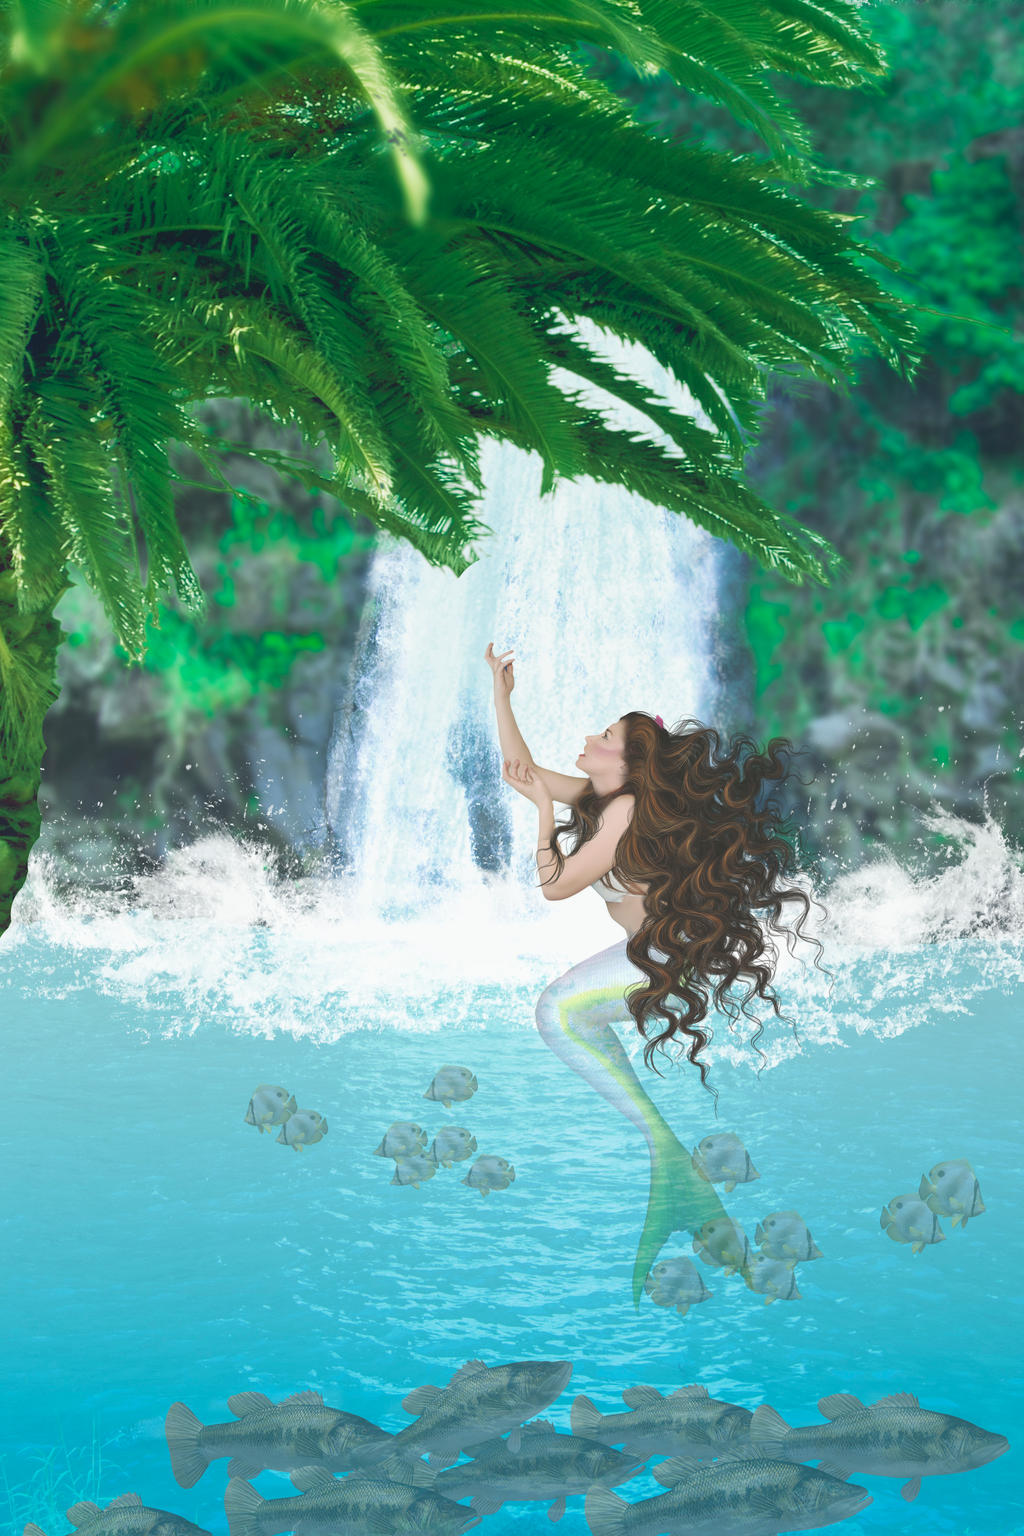 Mermaid at the Waterfall by marphilhearts